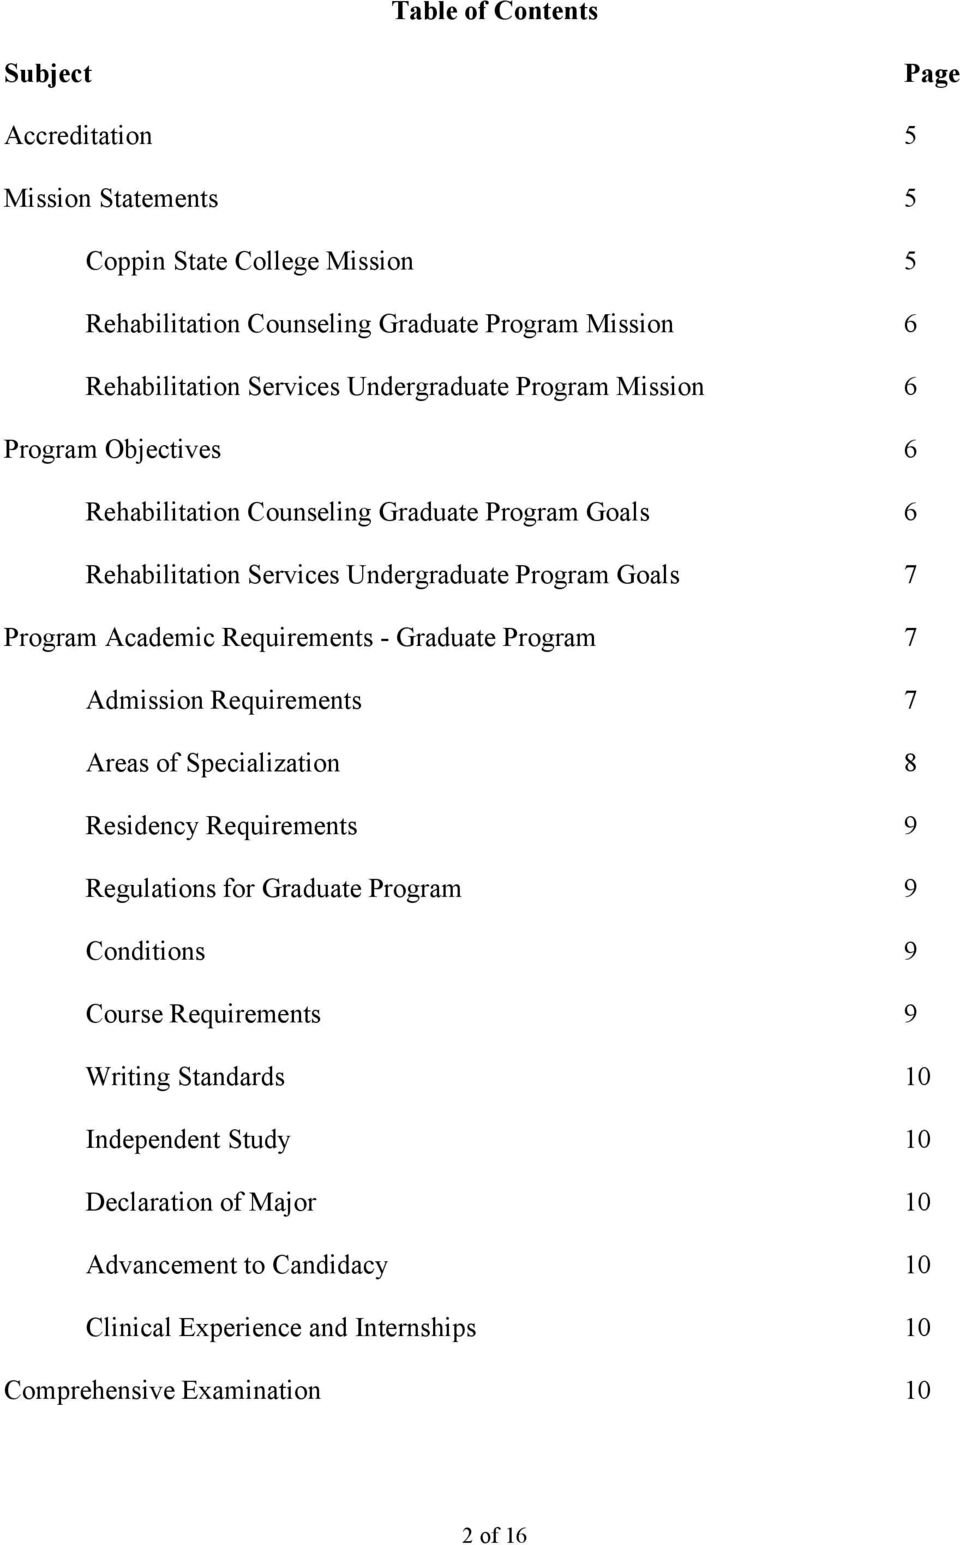 Academic Requirements - Graduate Program 7 Admission Requirements 7 Areas of Specialization 8 Residency Requirements 9 Regulations for Graduate Program 9 Conditions 9 Course